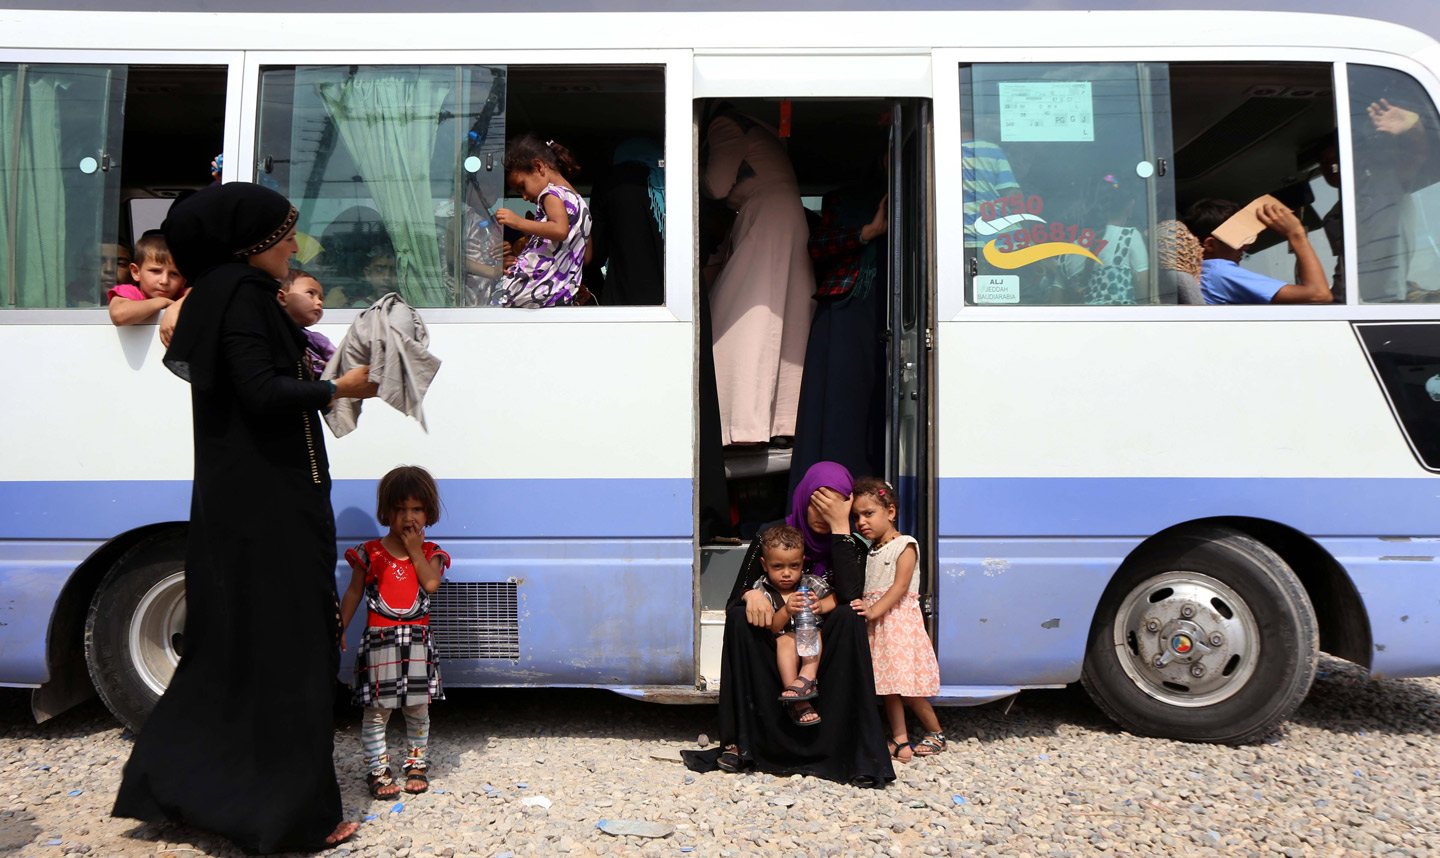 Iraqi families who had fled the violence around the northern Iraqi city of Mosul, board a bus in the Dibaga camp in the town of Makhmur, before returning to their villages south of the city of Mosul on September 1, 2016.  / AFP / SAFIN HAMED        (Photo credit should read SAFIN HAMED/AFP/Getty Images)